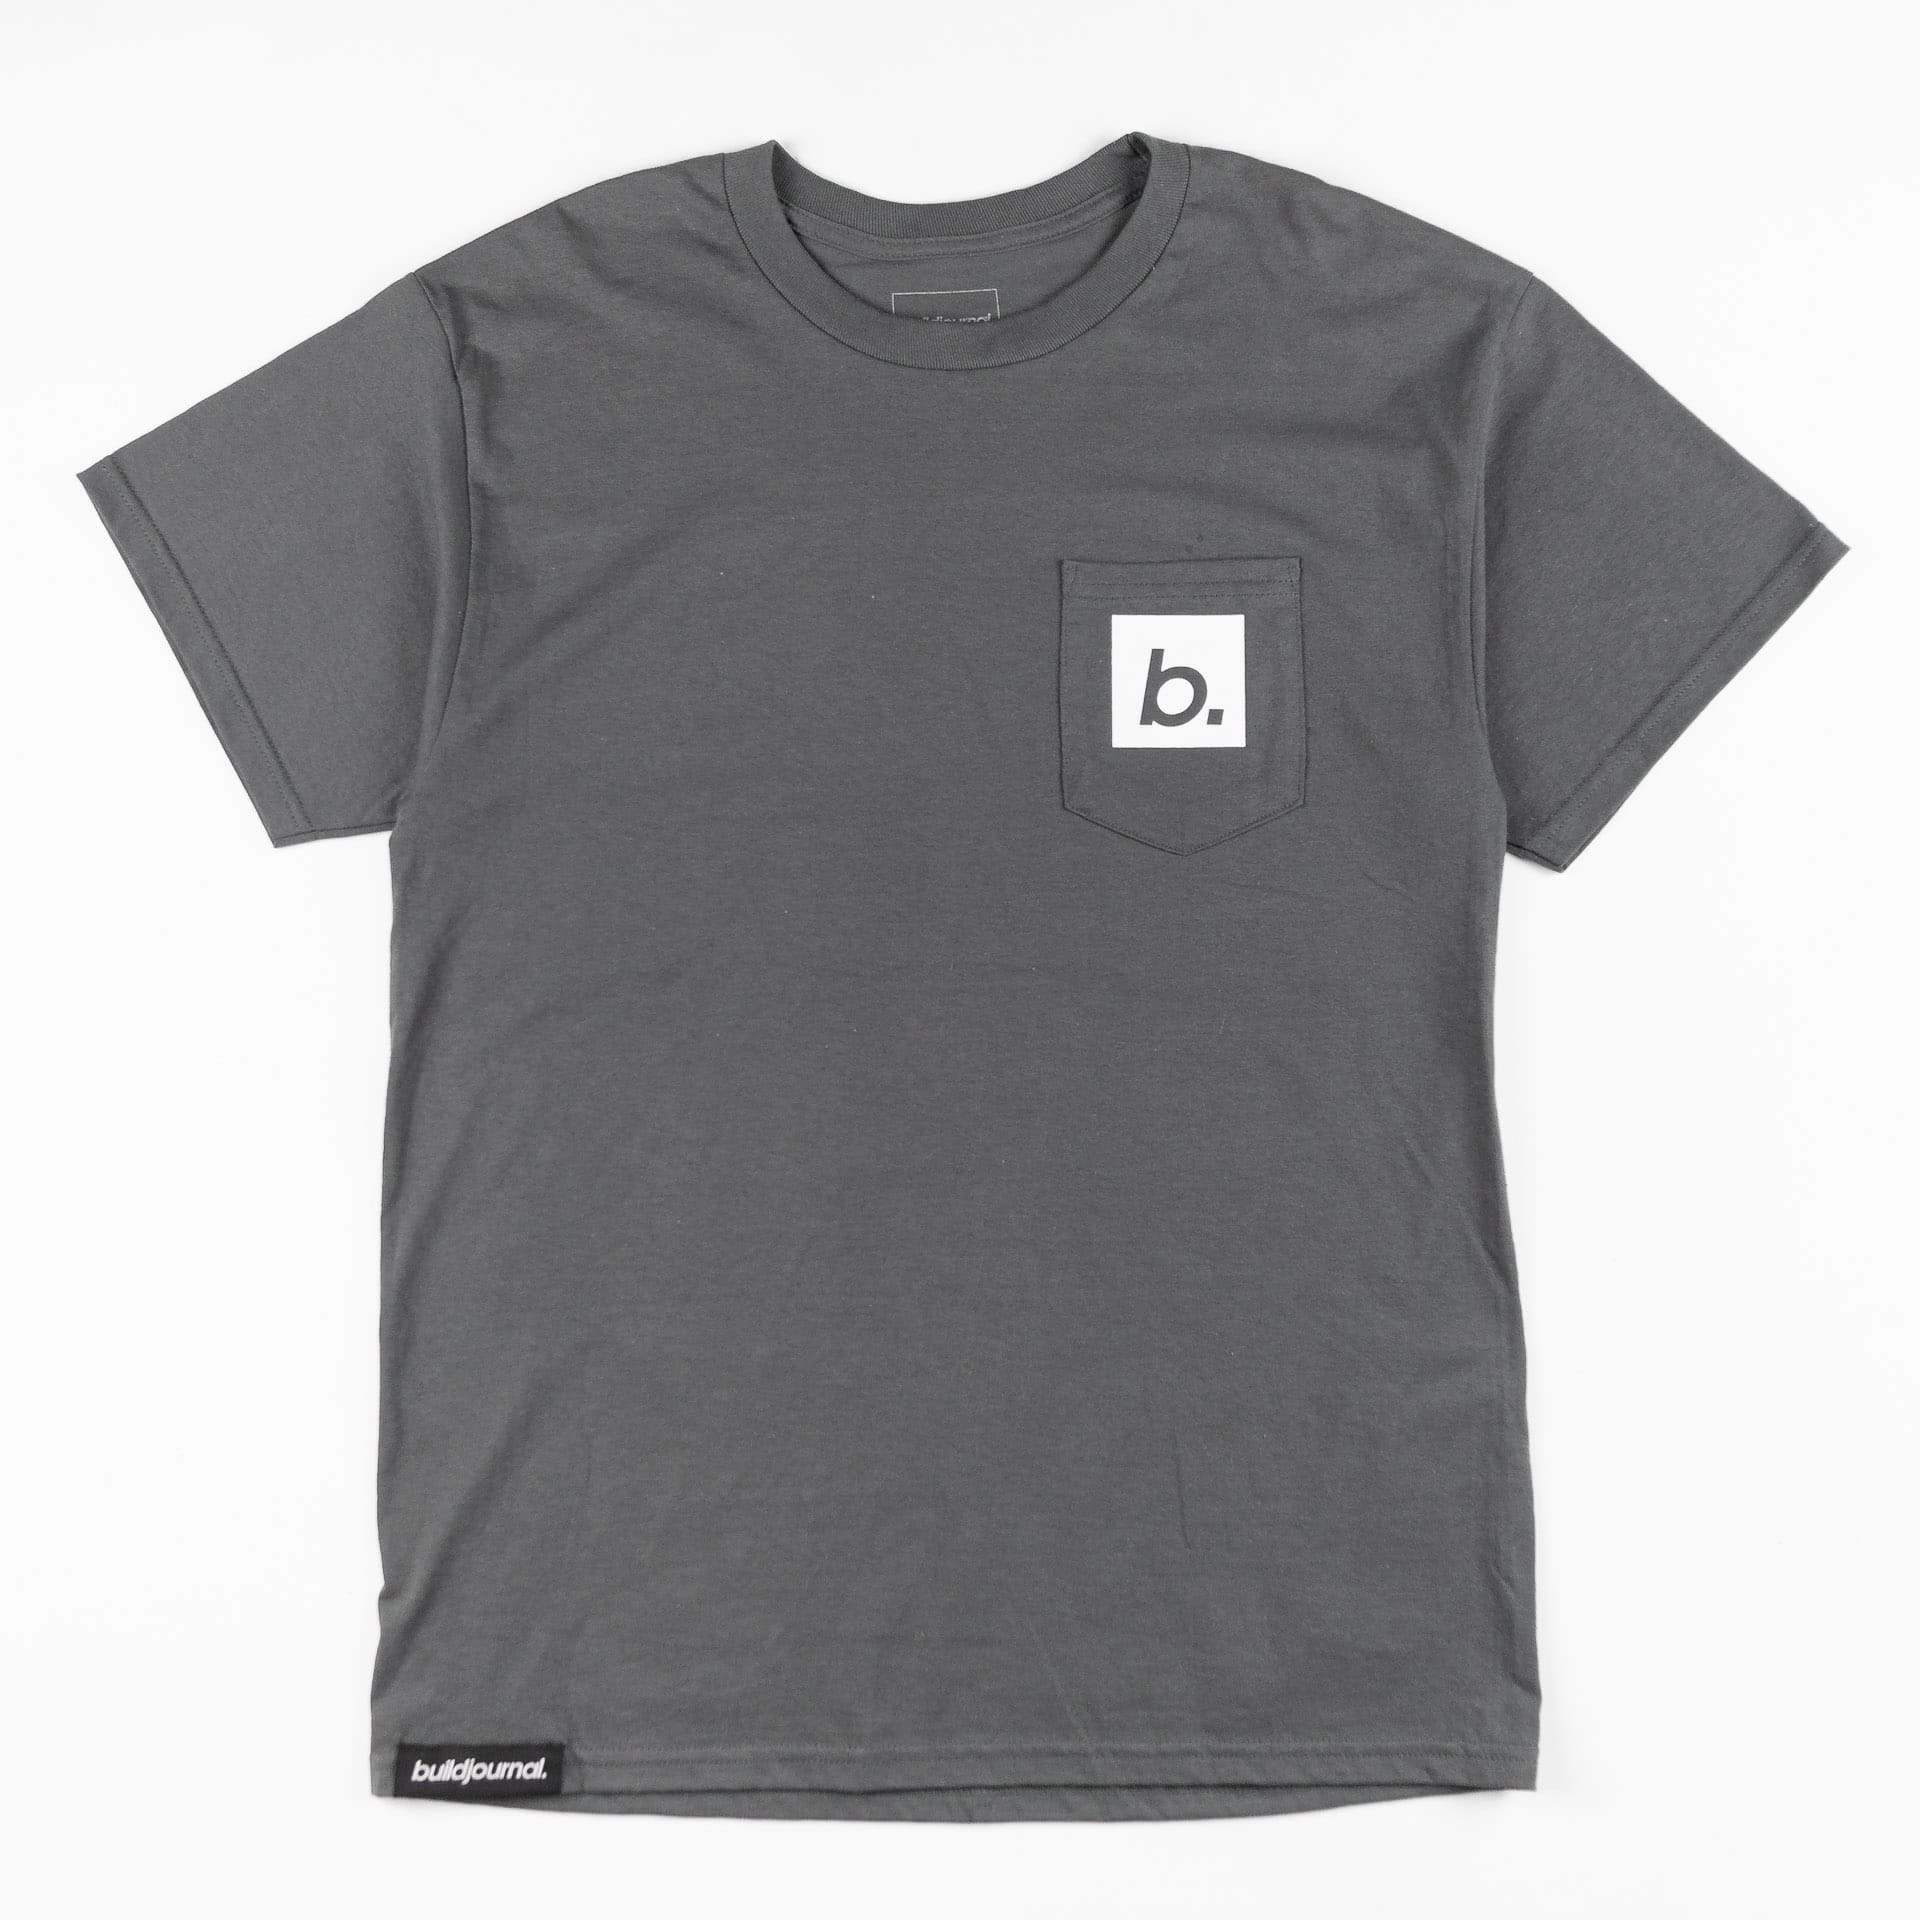 Buildjournal B Pocket T-Shirt